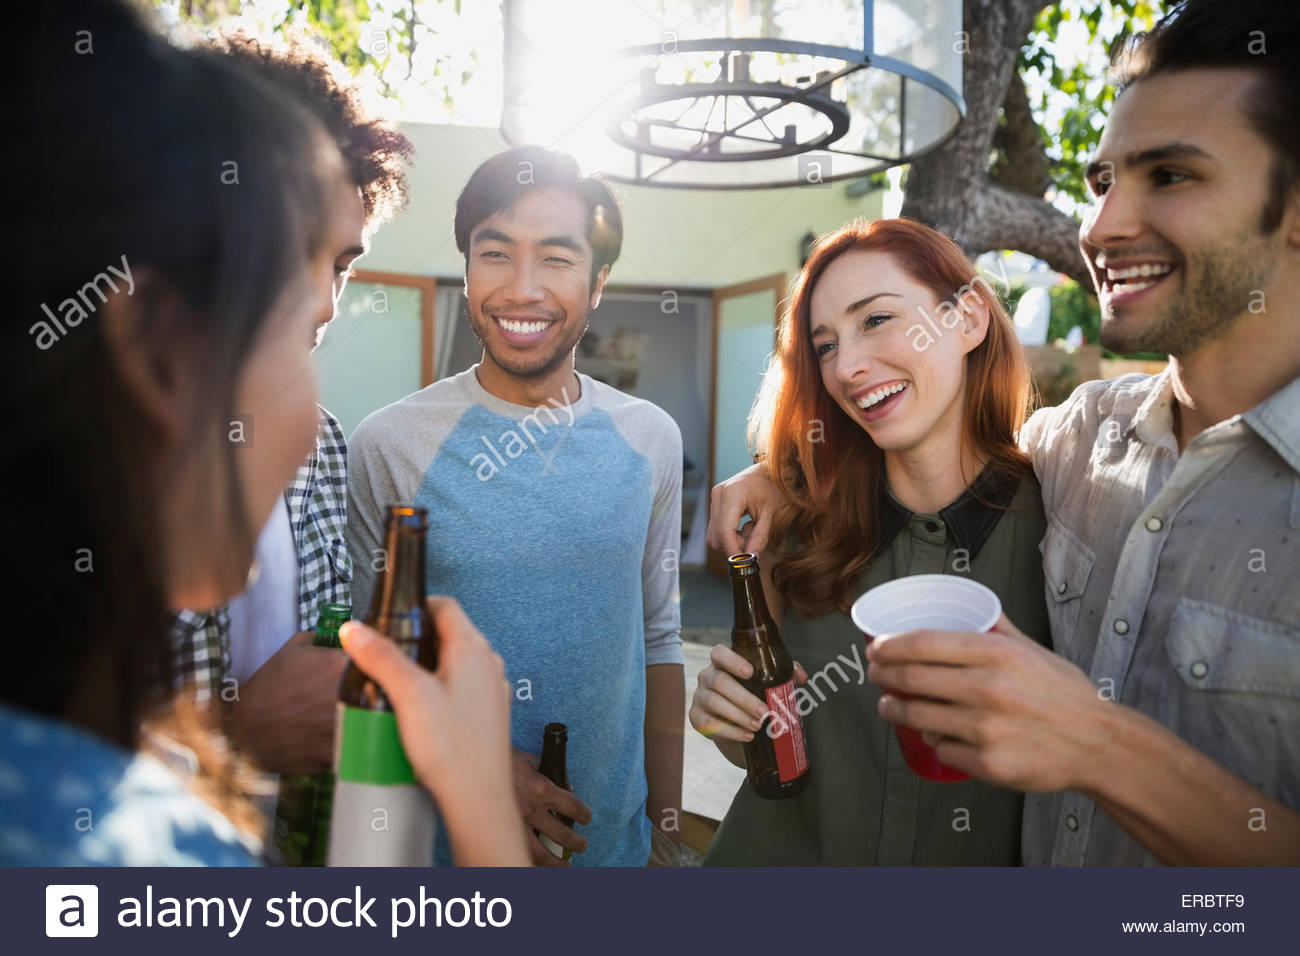 Smiling friends talking drinking beer on sunny patio - Stock Image